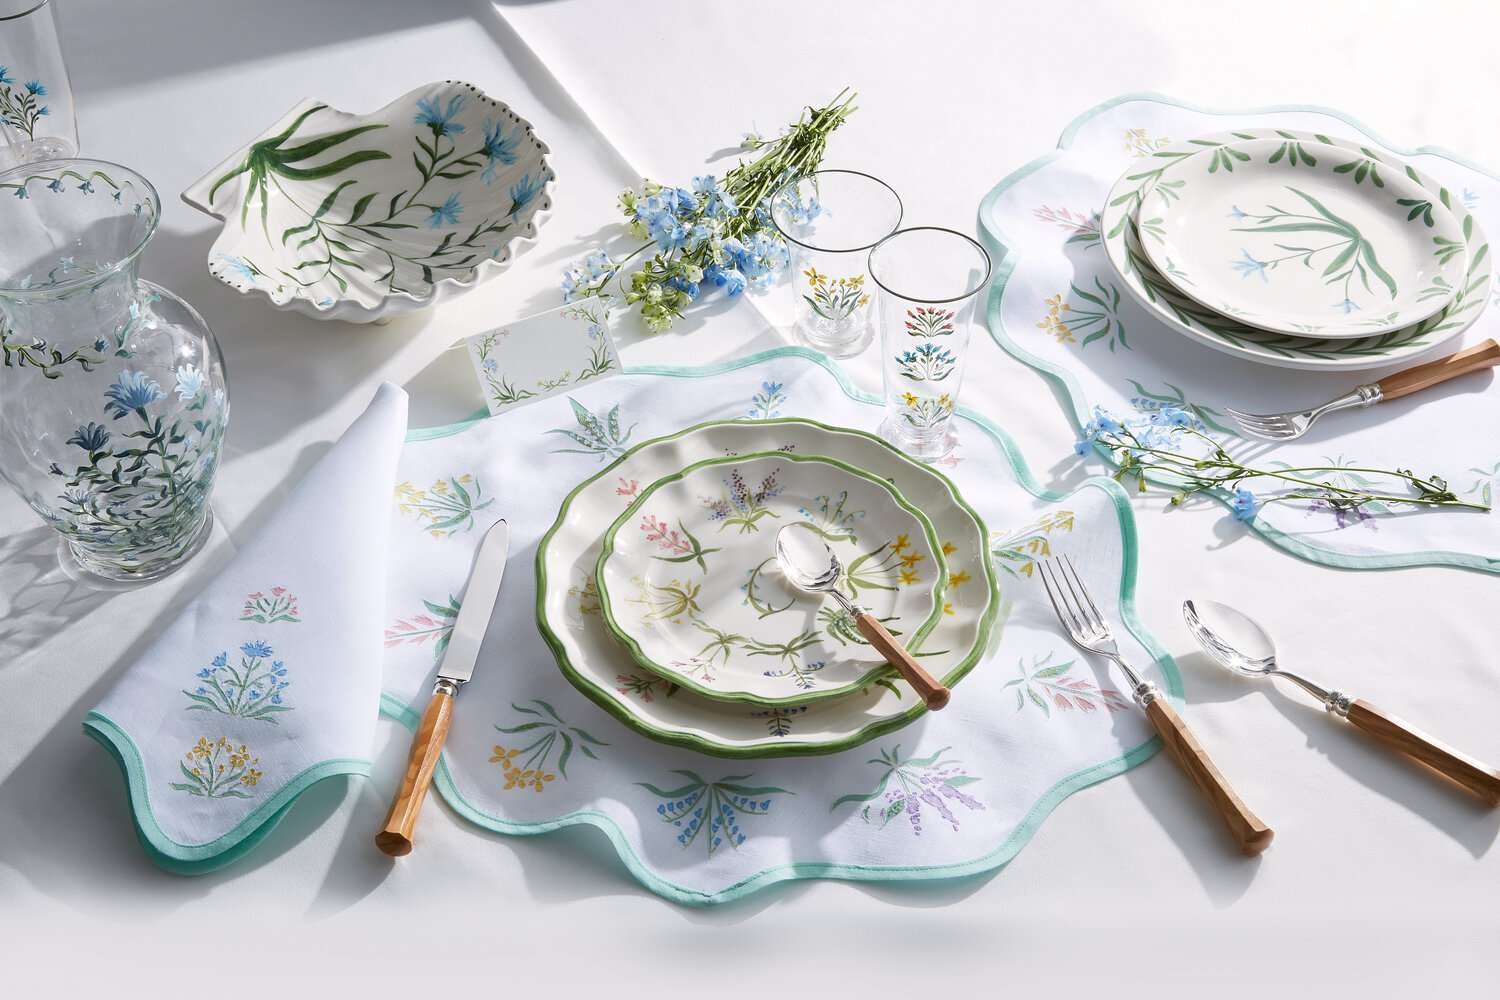 Tablescape with floral painted dinnerware.